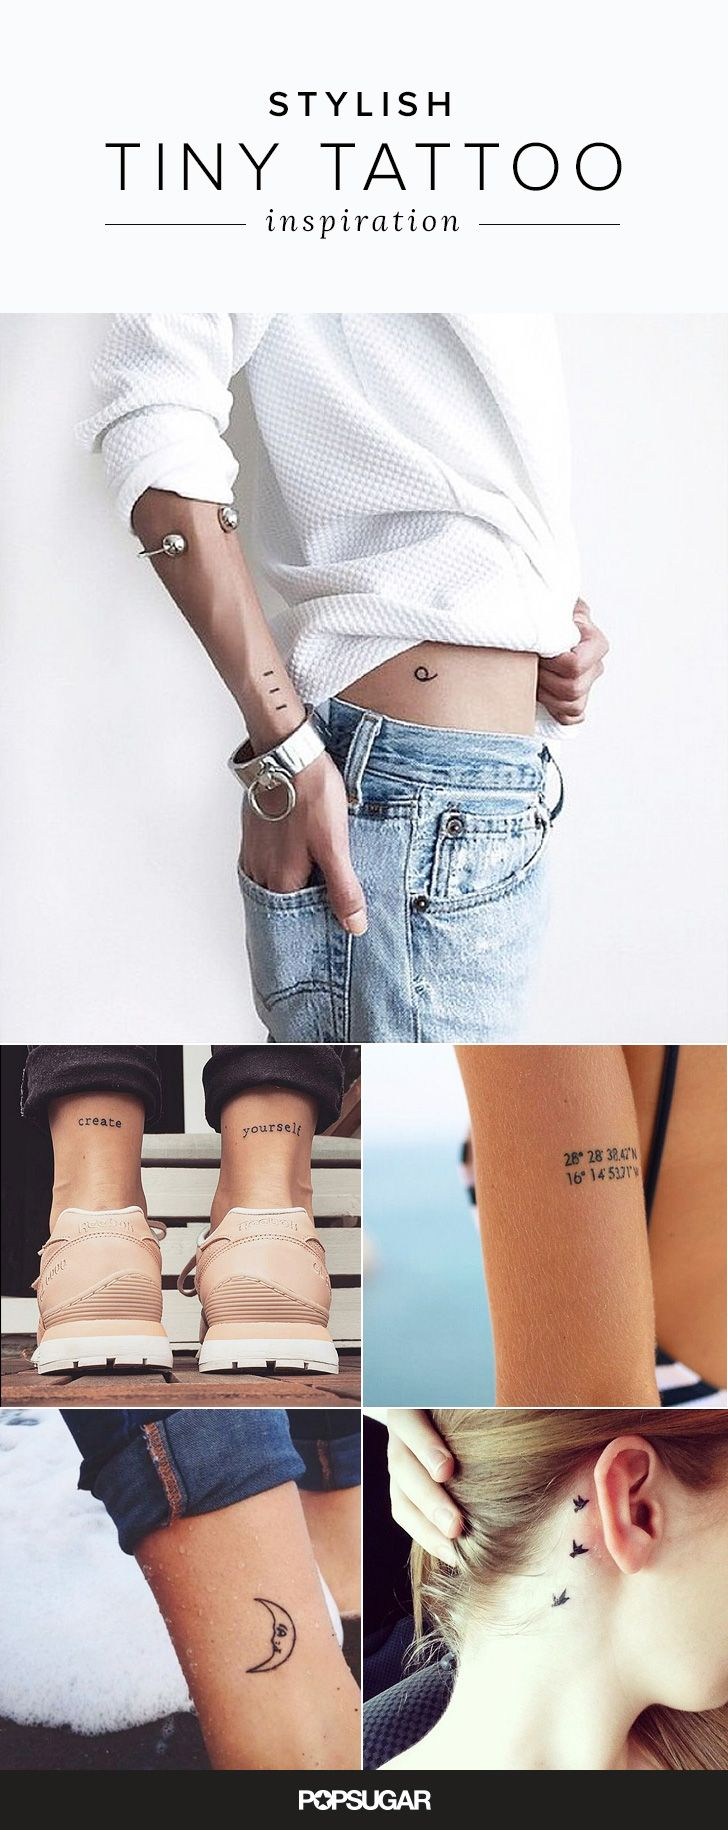 40 Stylish Small Tattoos You Ll Want To Flaunt Every Day Tattoo